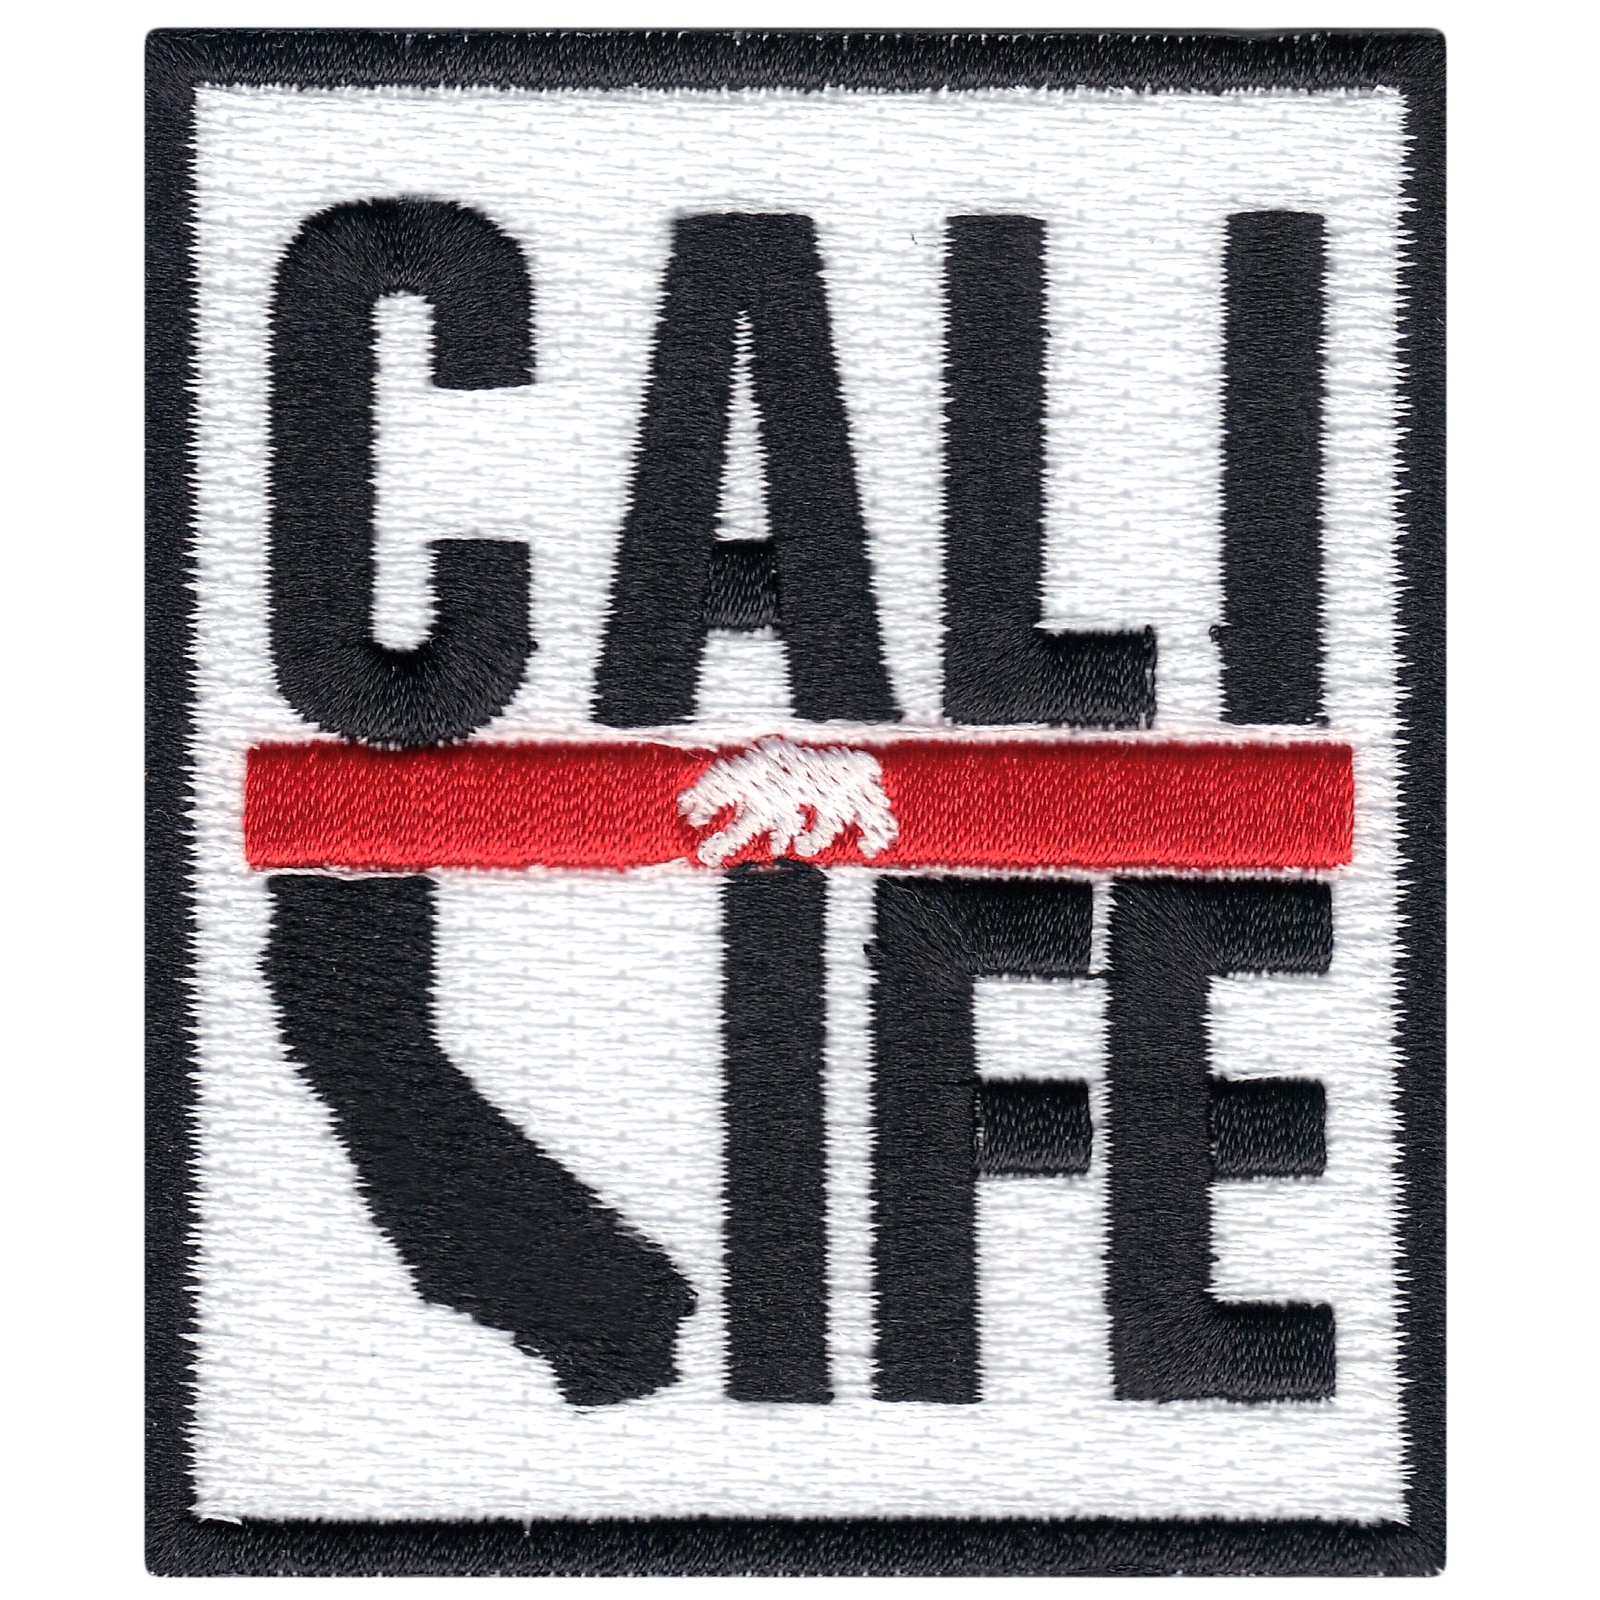 Cali Life State Iron On Applique Patch